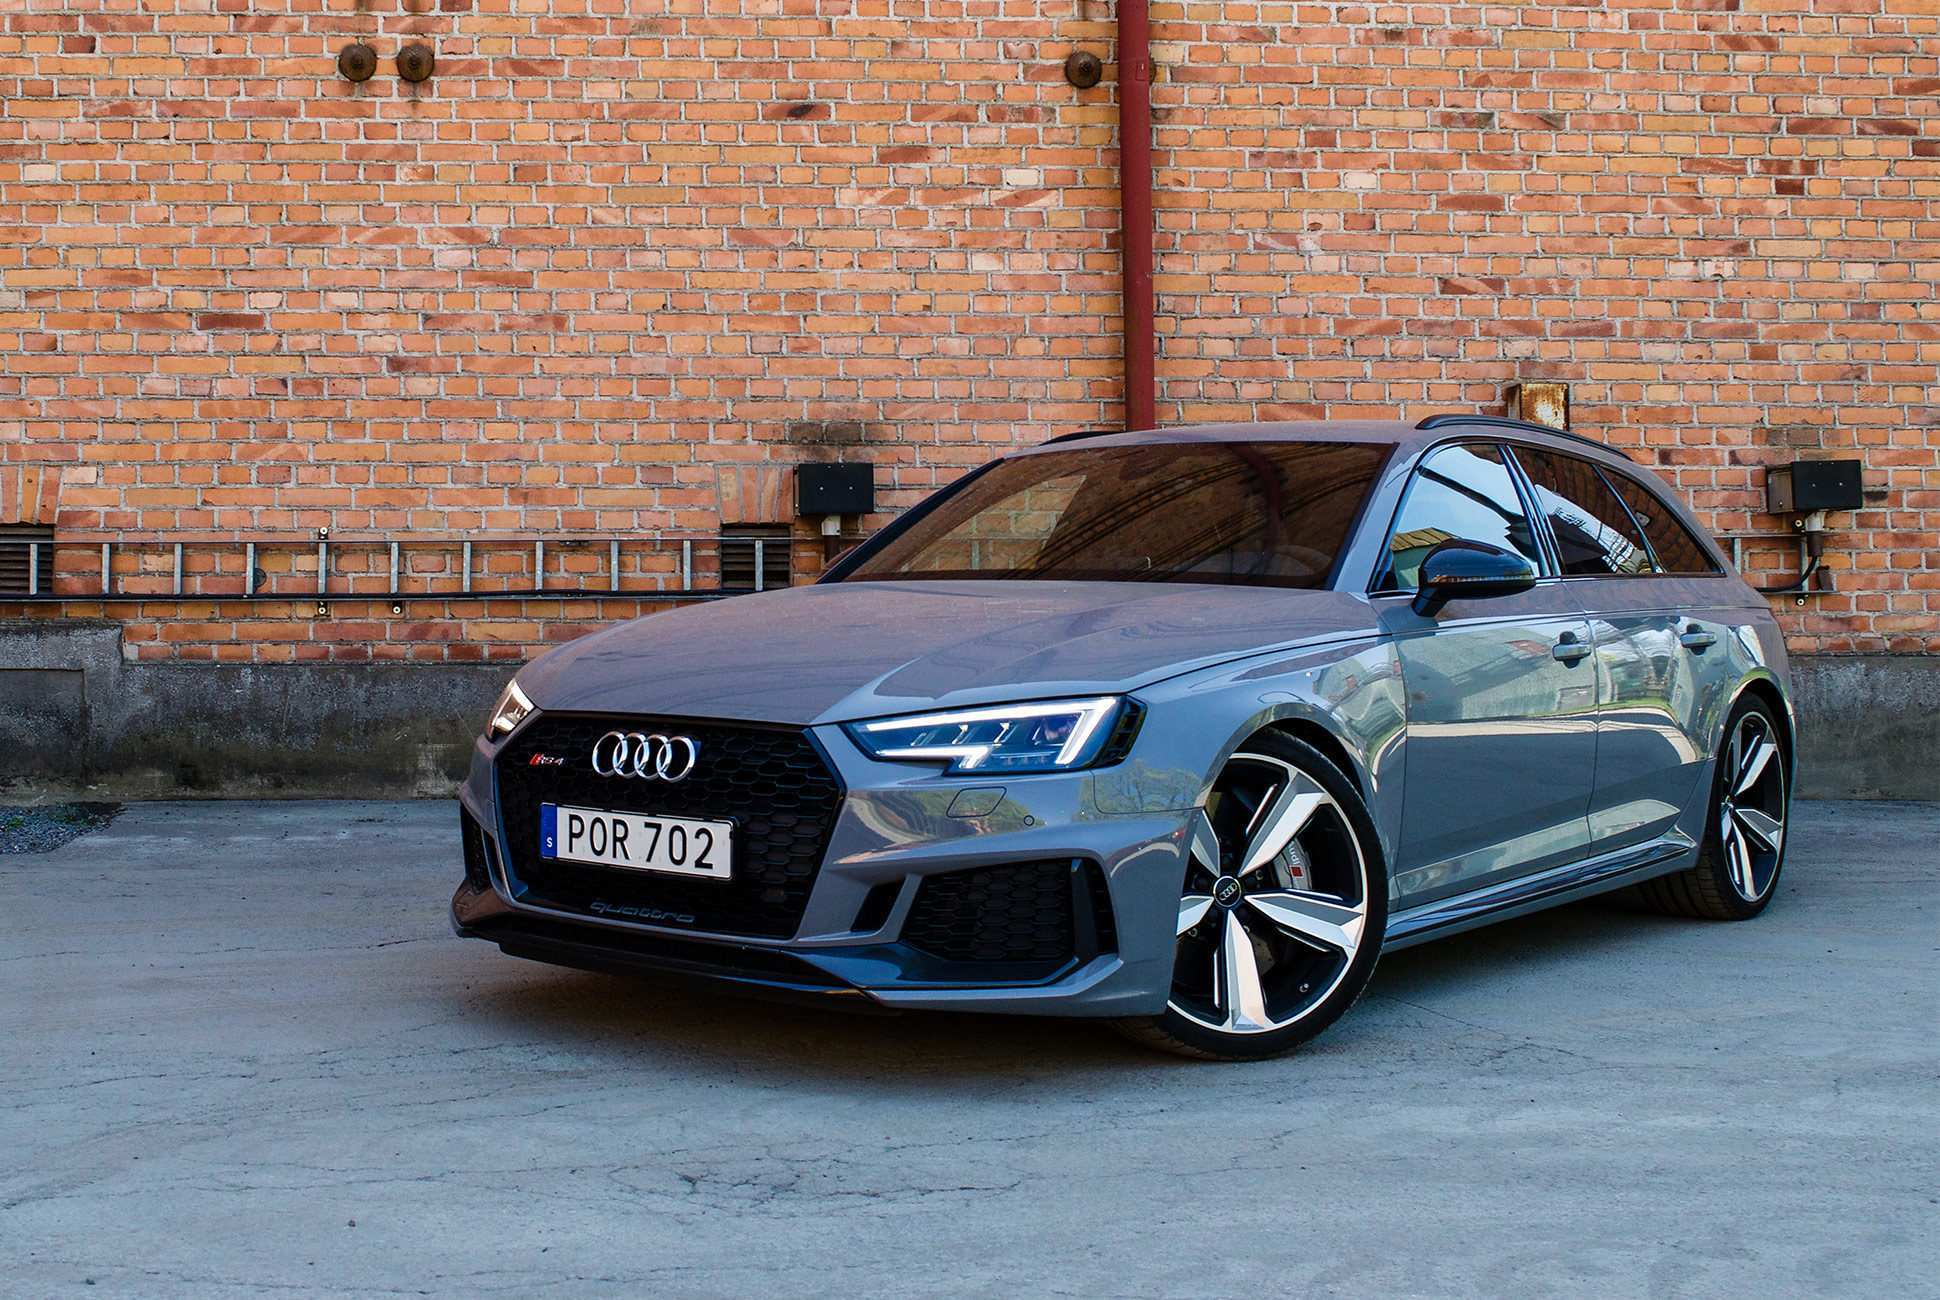 78 Great 2019 Audi Rs4 Usa Performance by 2019 Audi Rs4 Usa